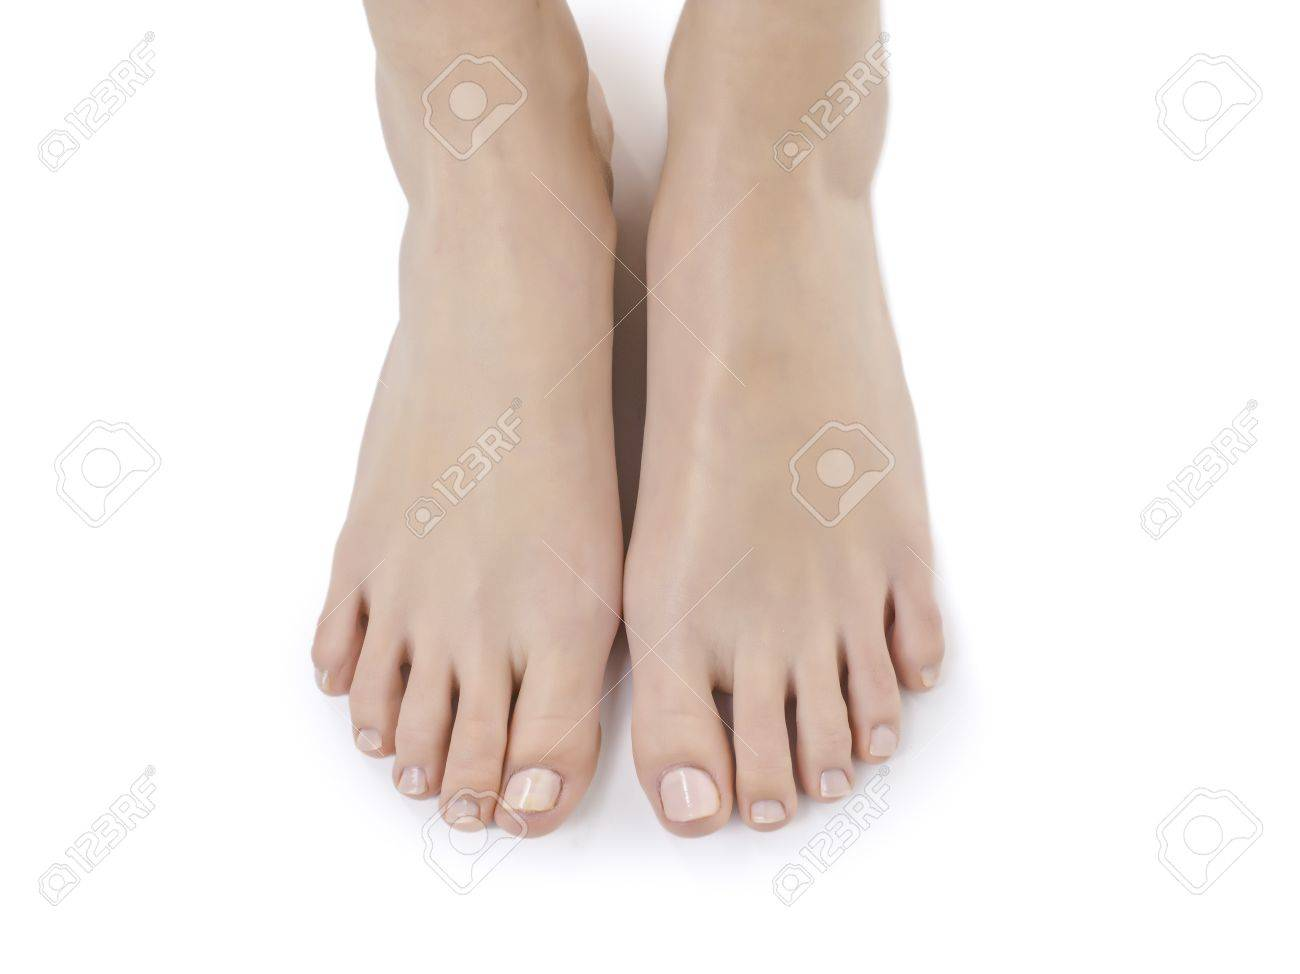 A woman's feet against white background - 17395414